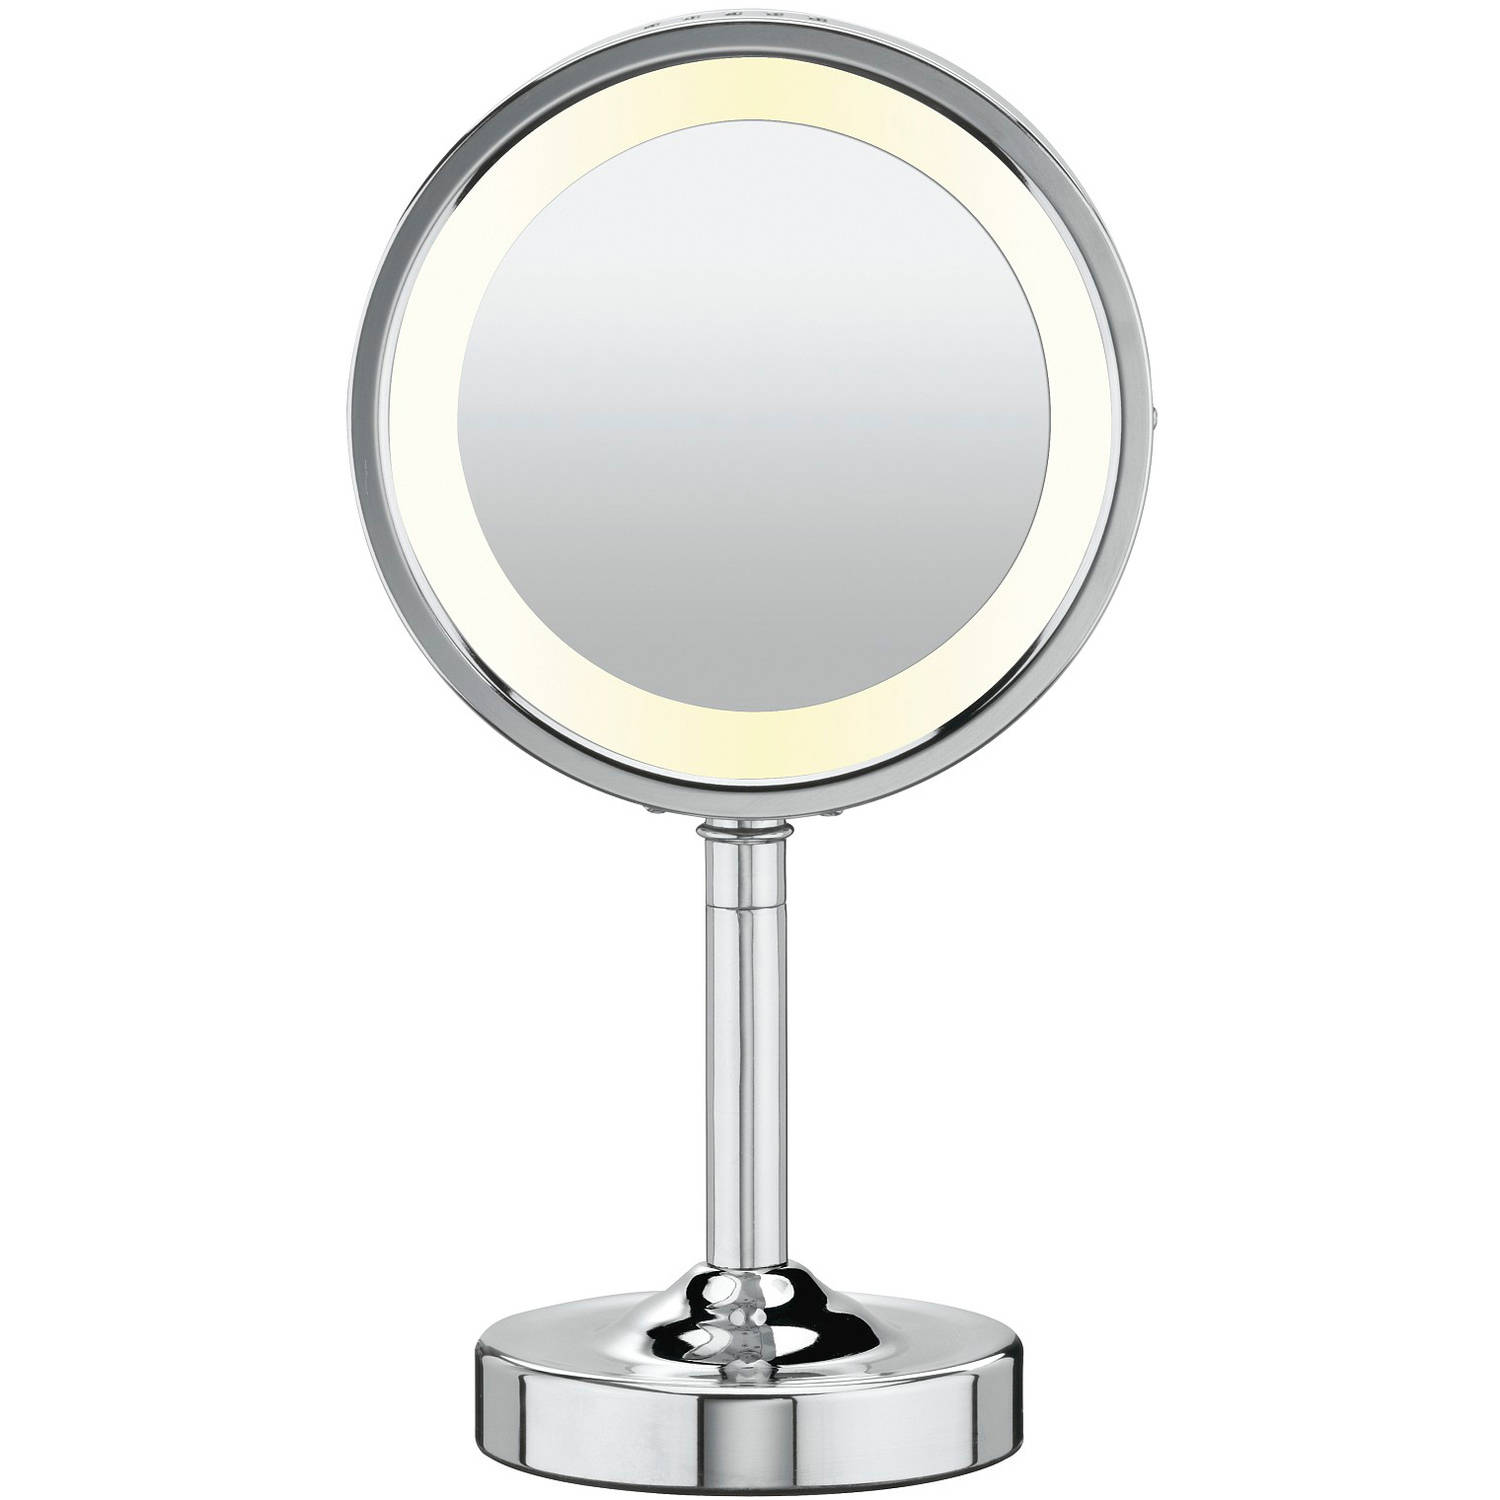 Conair Double-Sided Lighted Vanity Mirror; 1x / 5x Magnification, Chrome